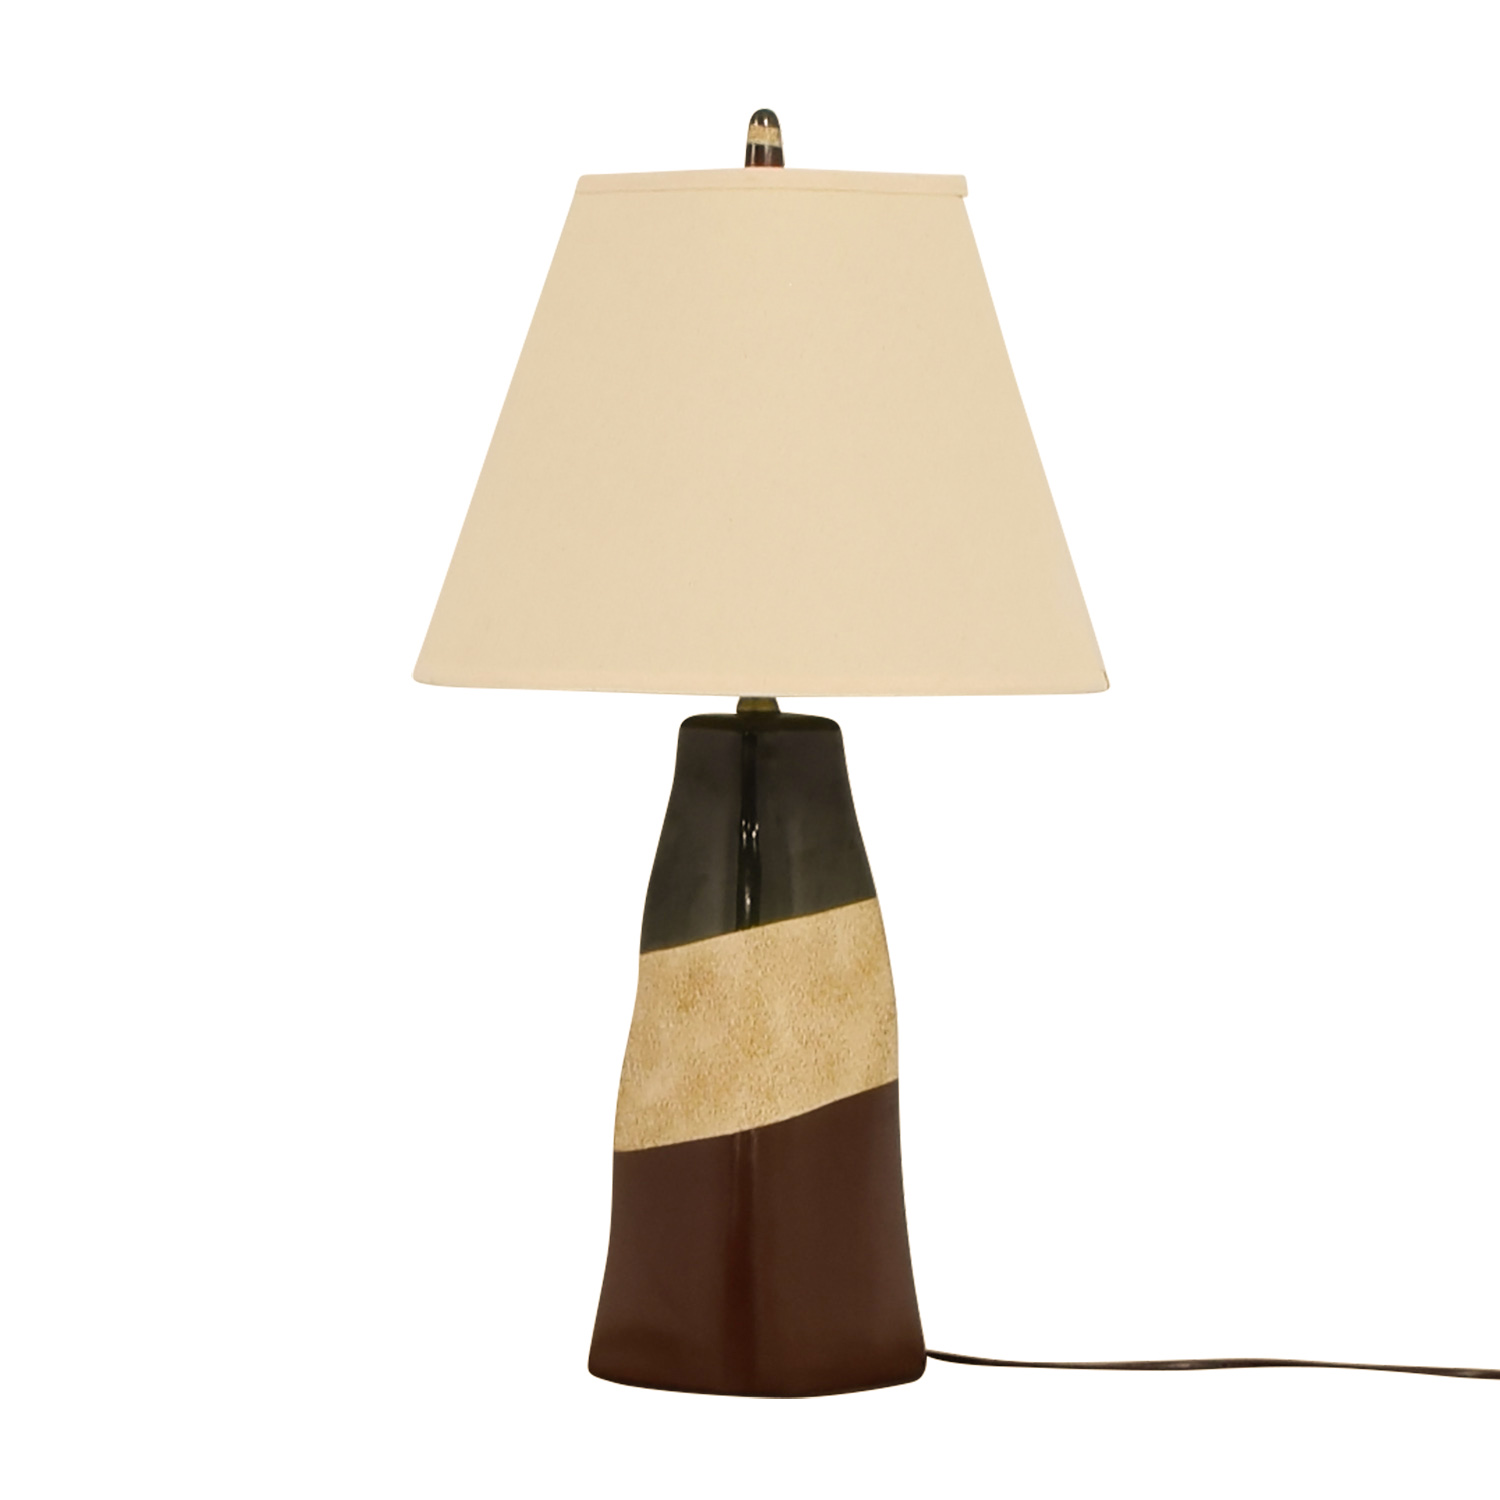 Brown Green and Beige Ceramic Table Lamp